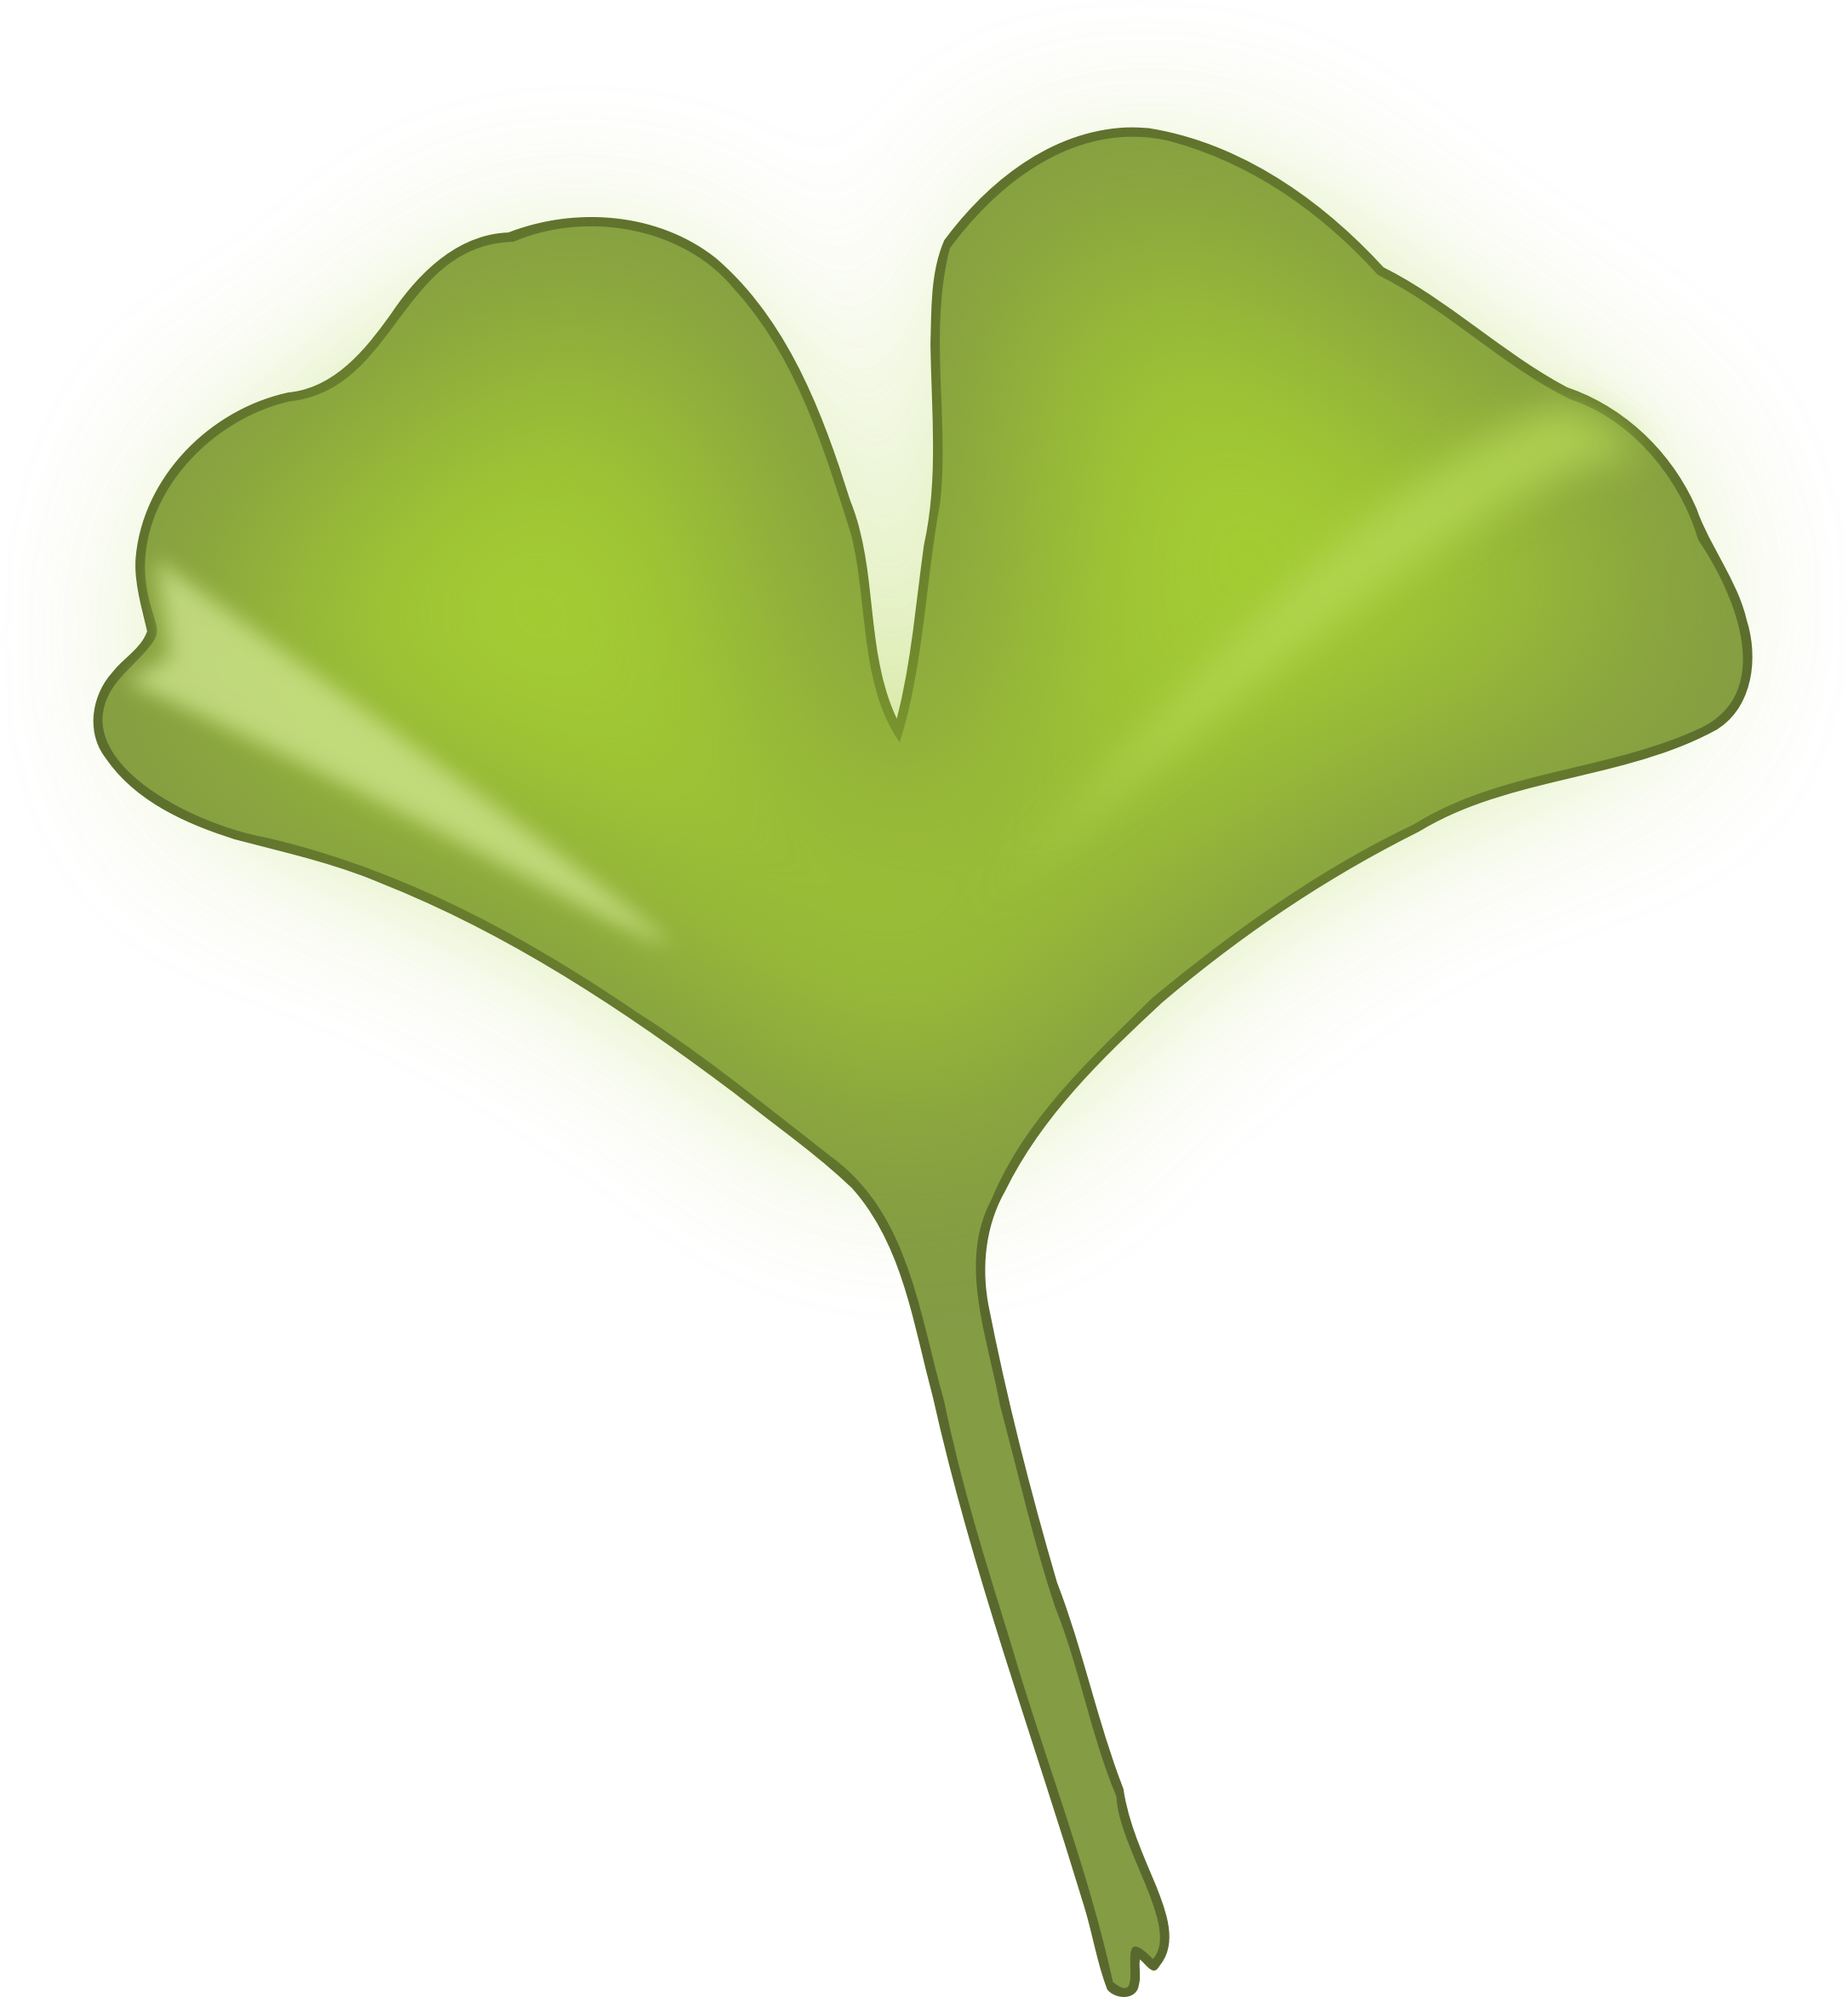 Leaf heart clipart vector freeuse Clipart - ginkgo biloba leaf vector freeuse